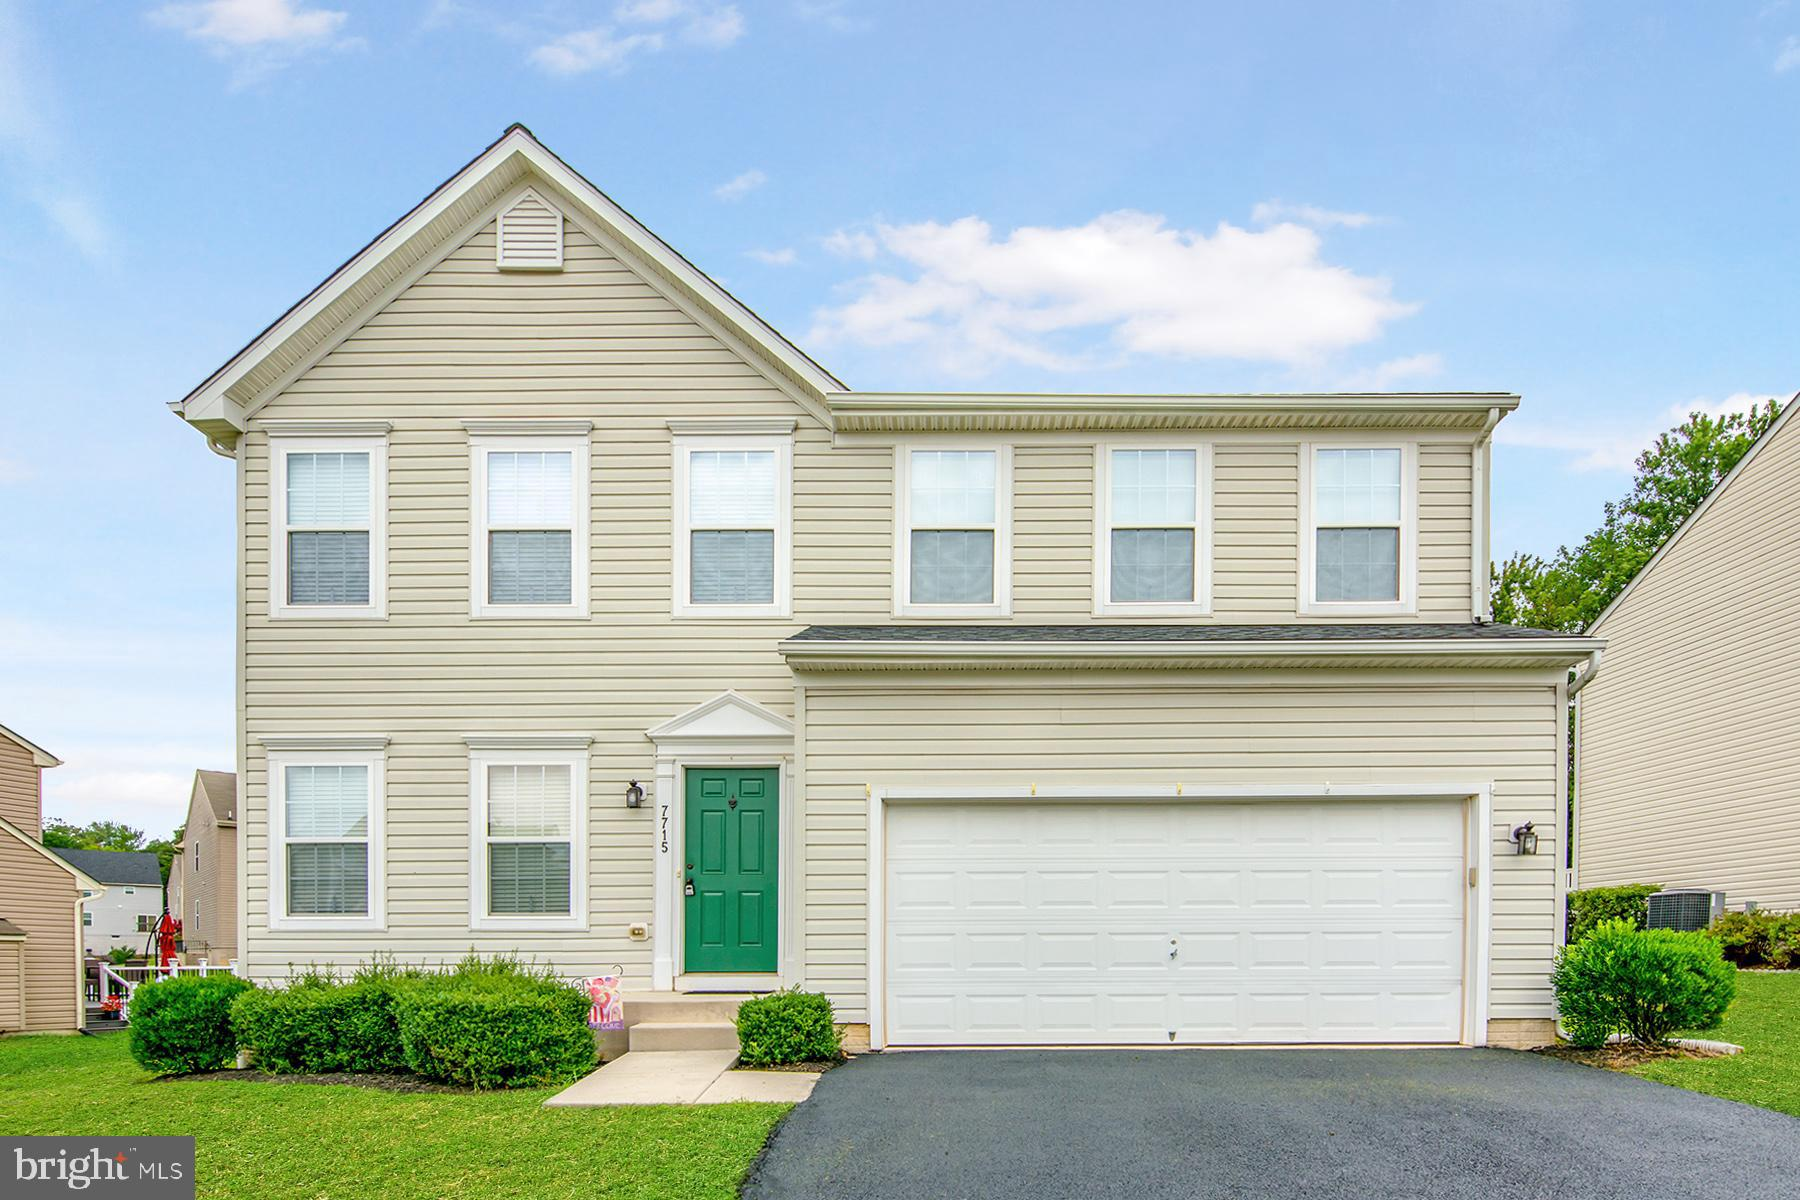 7715 HEATHERS LANE, NOTTINGHAM, MD 21236